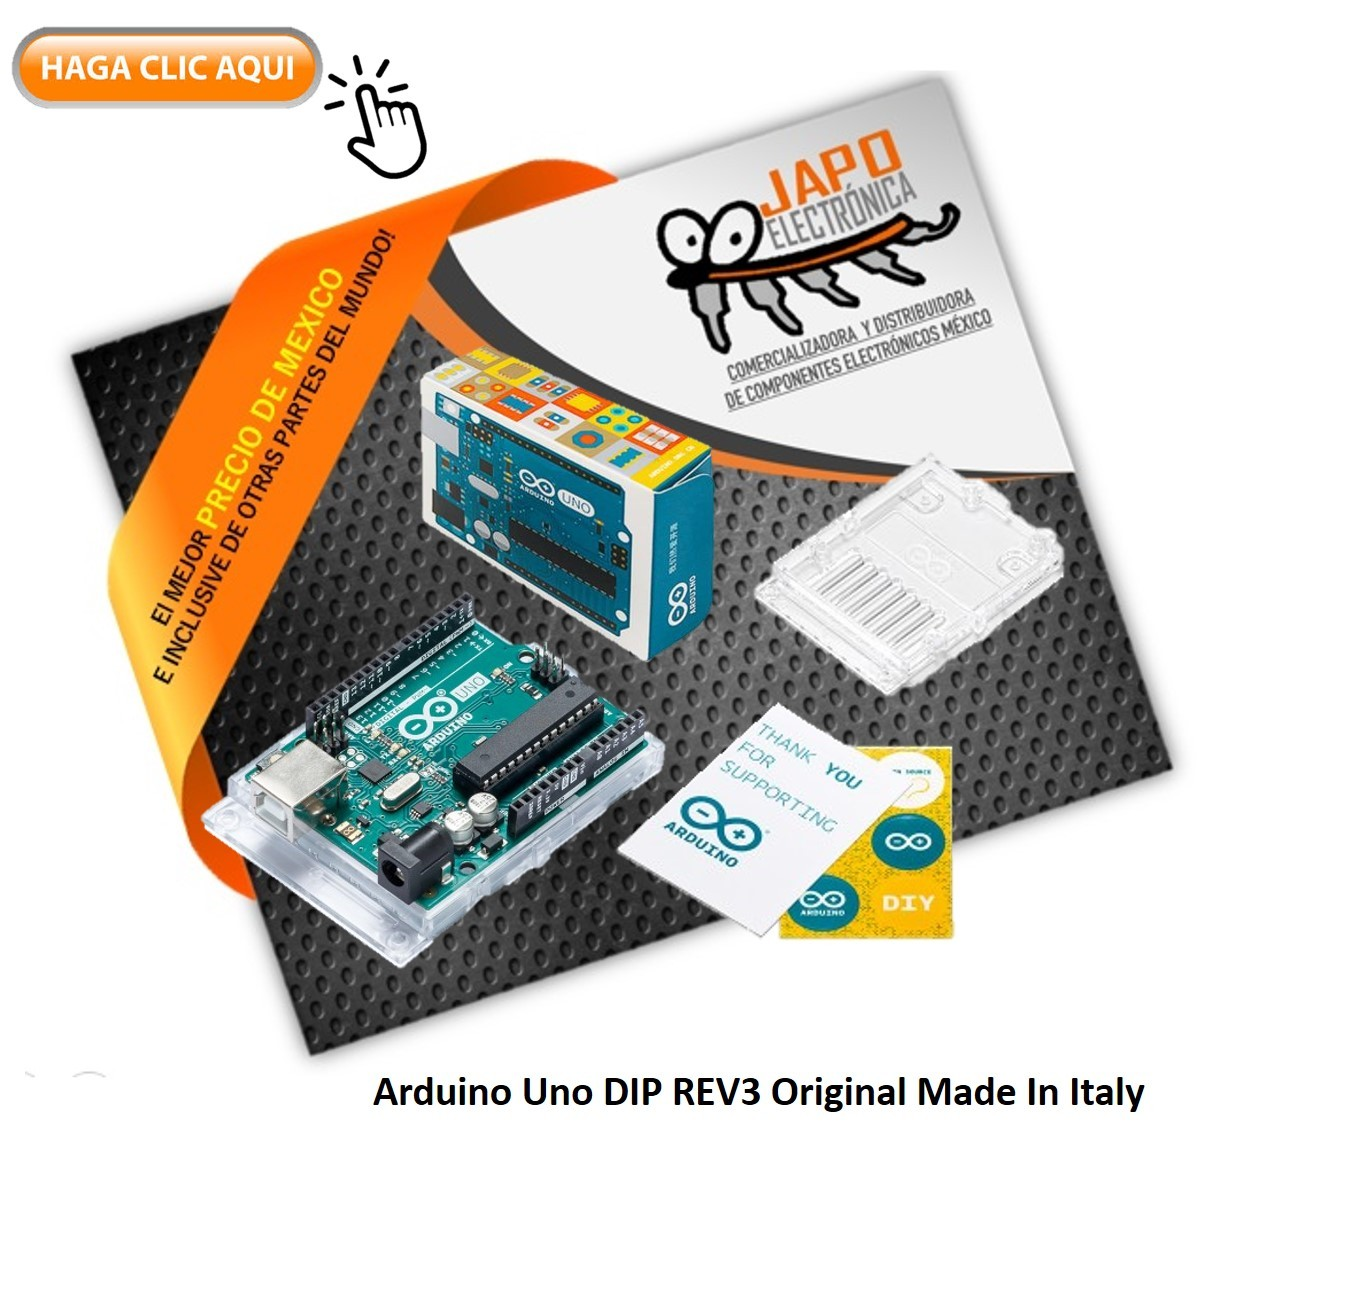 Arduino Uno DIP REV3 Original Made In Italy